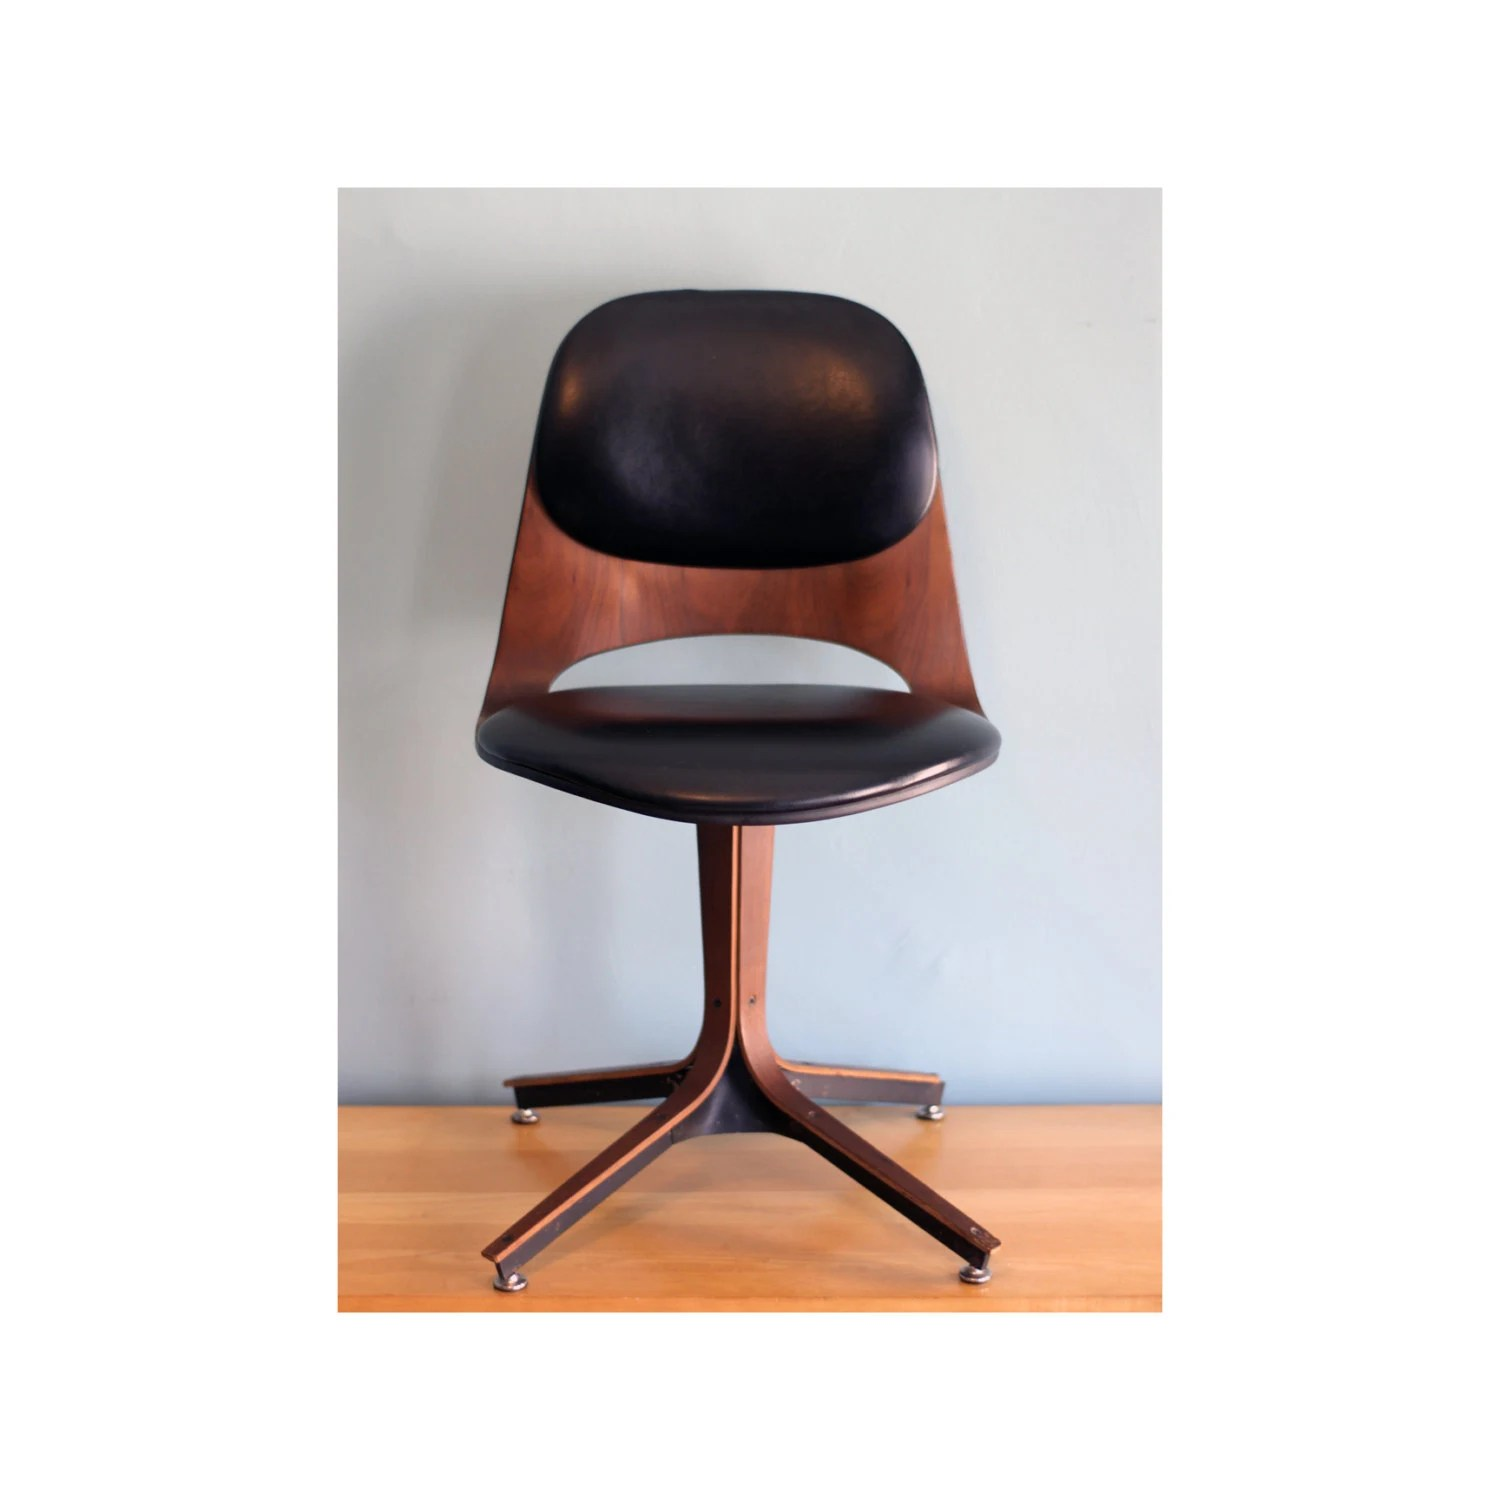 Mid Century Modern Office Chair Plycraft Swivel Desk Chair Mid Century Modern By